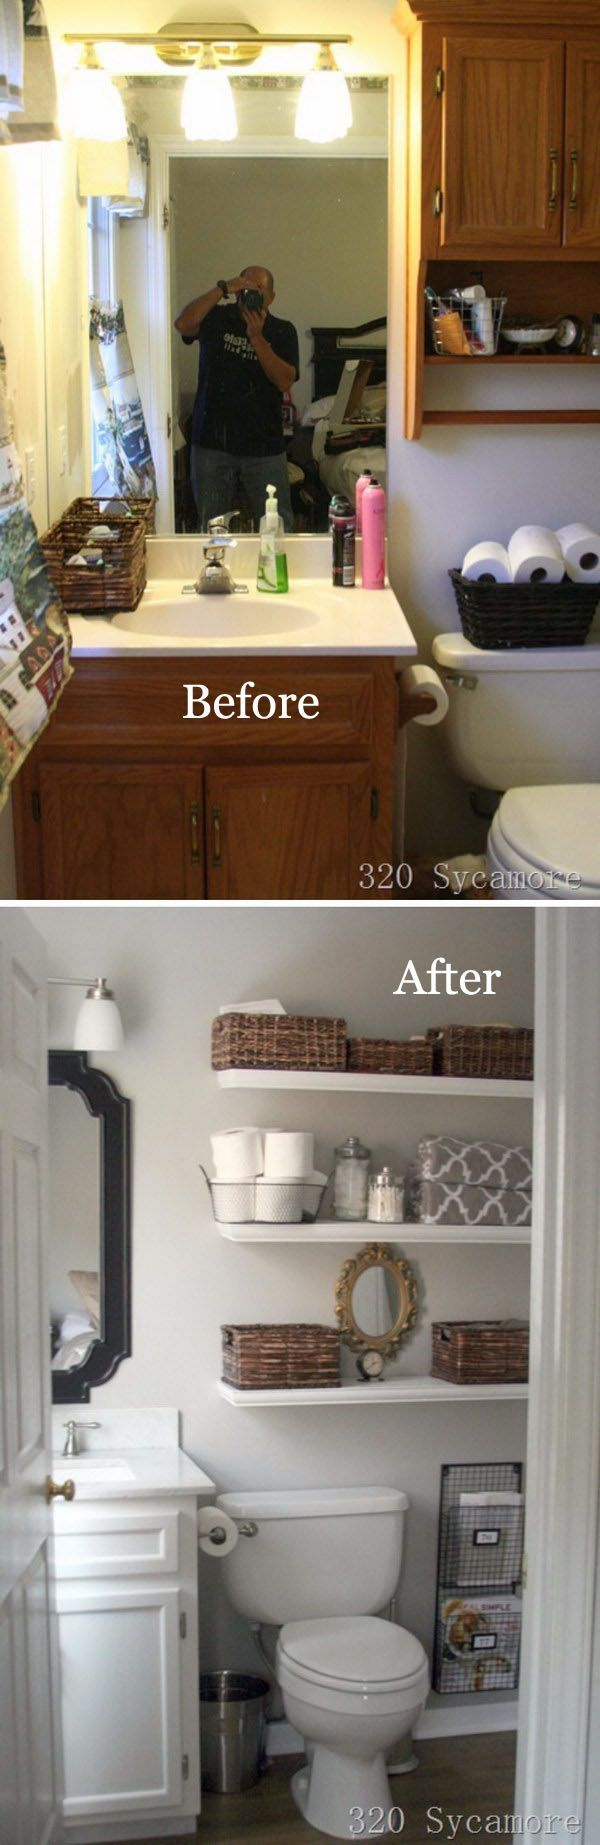 Mustsee Small Bathrooms Pins Small Bathroom Makeovers Small - Bathroom ideas